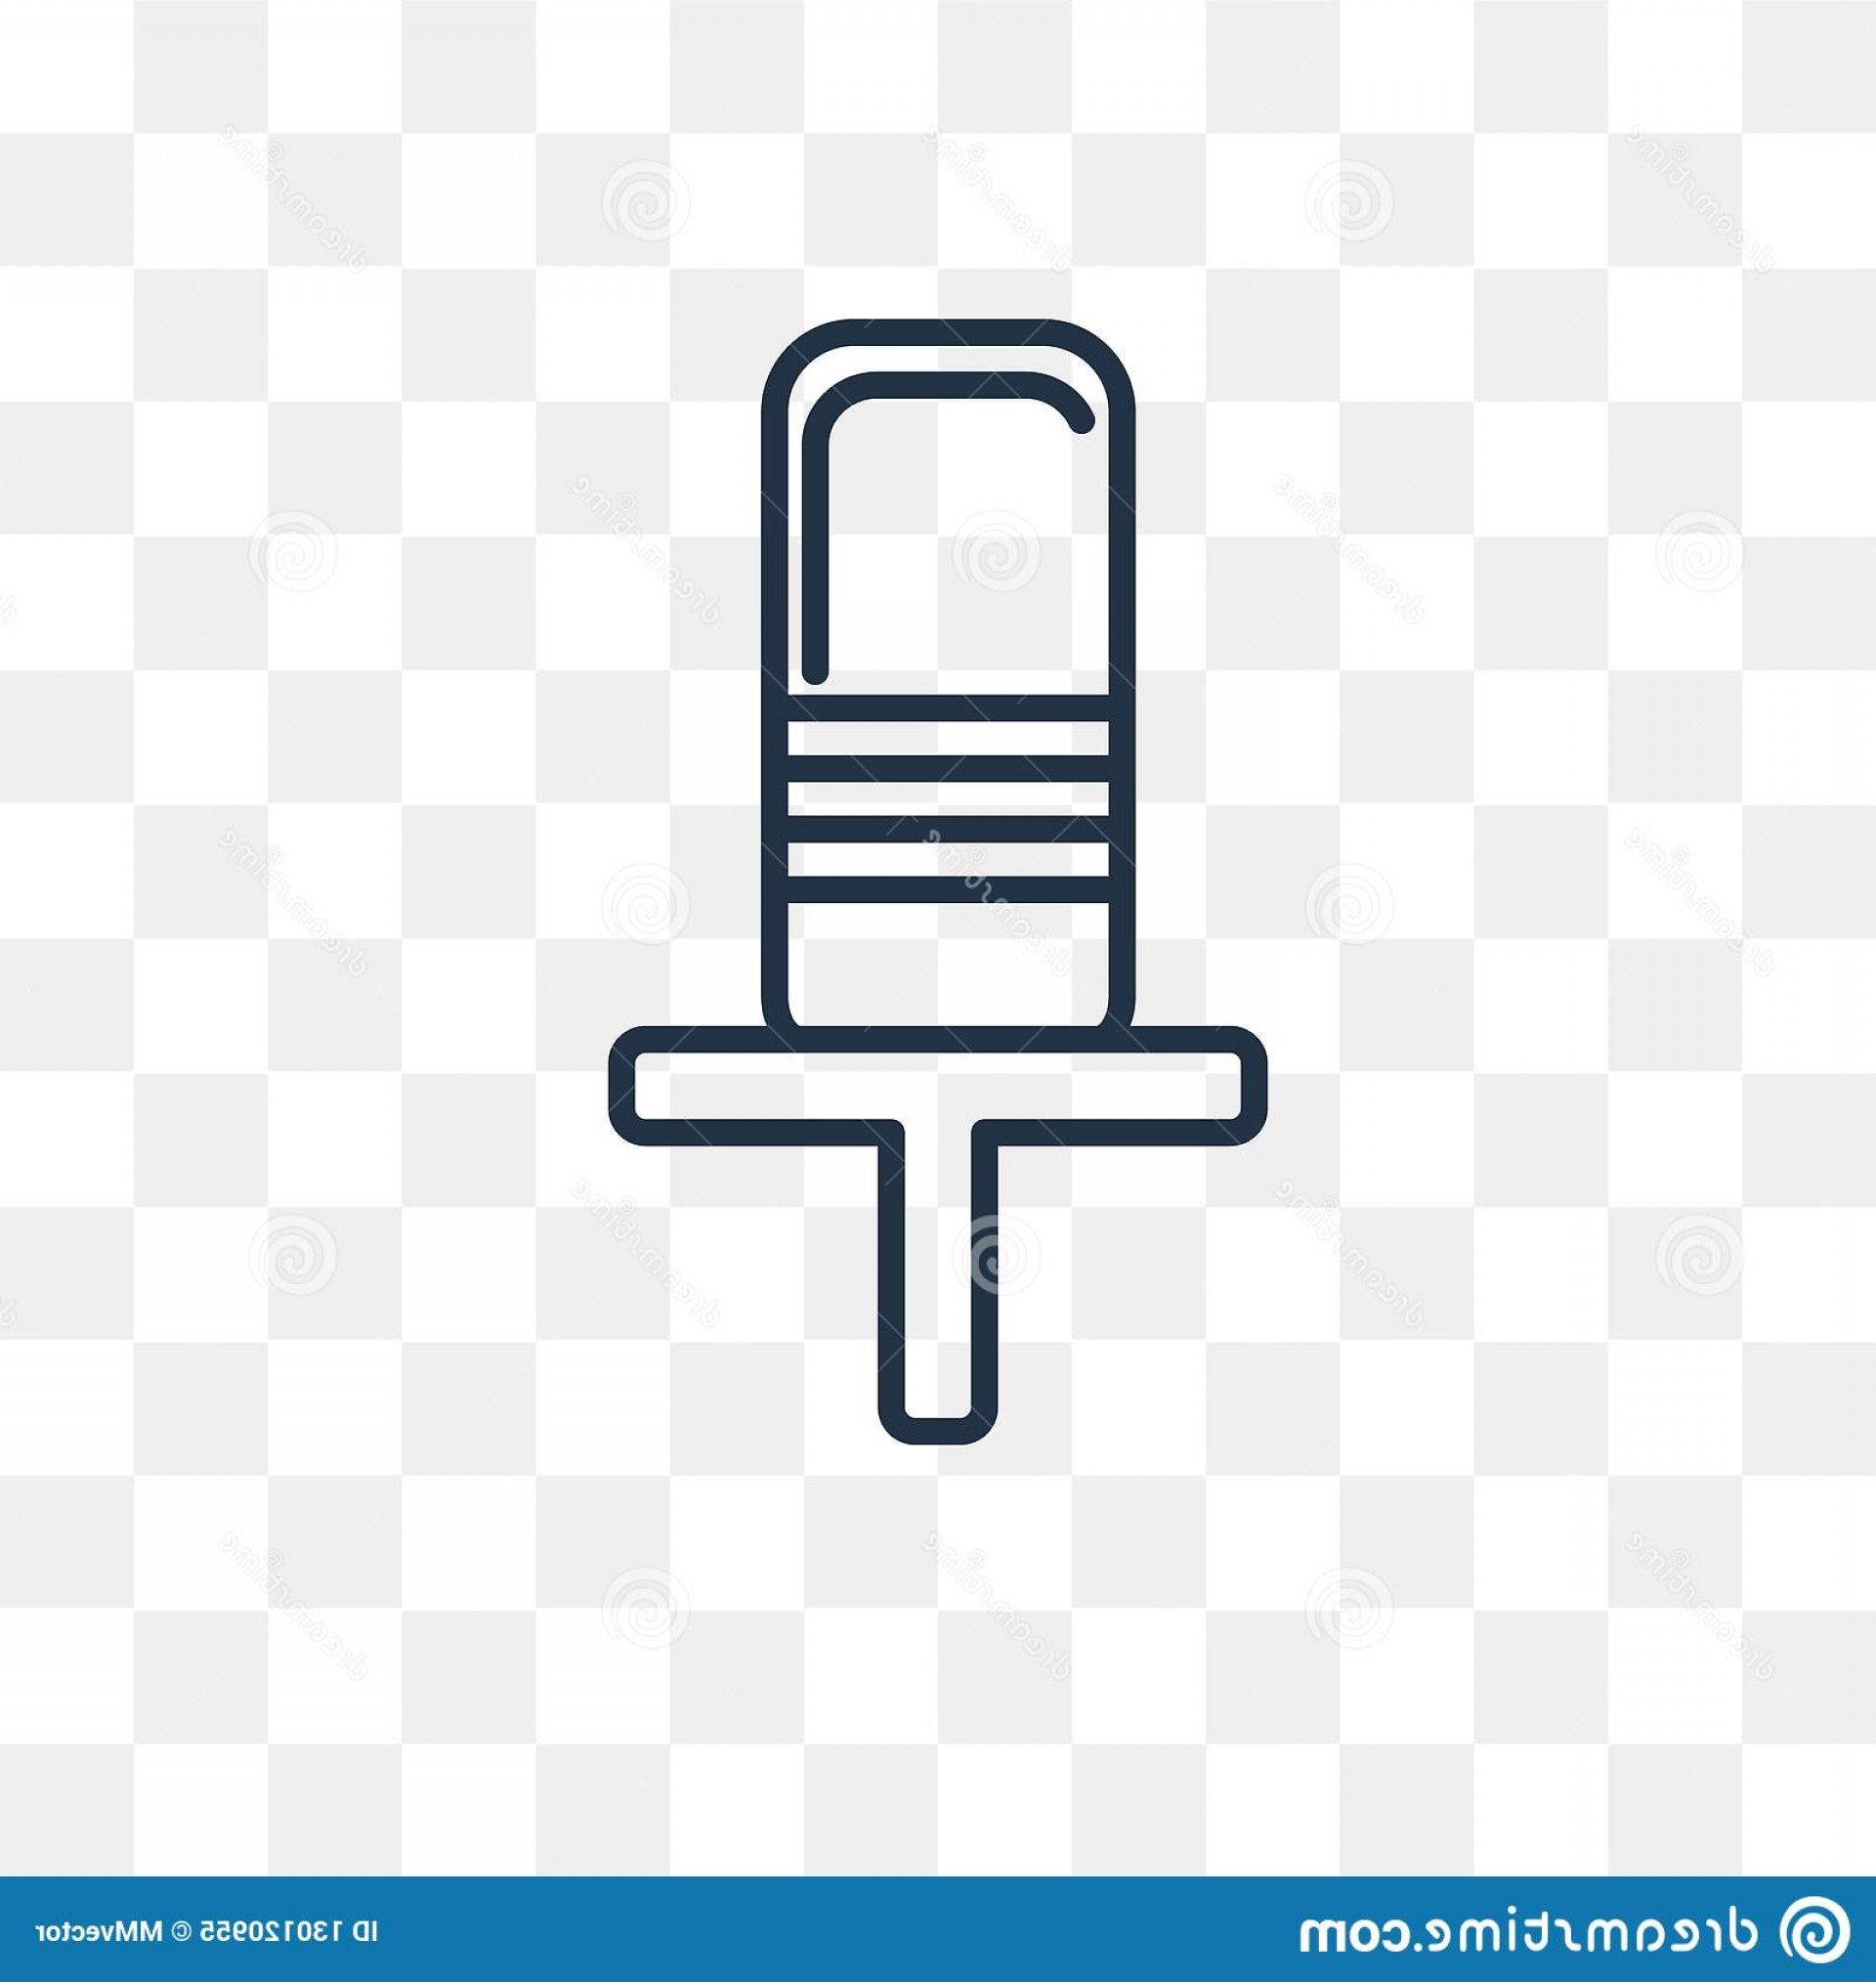 Microphone Recording Vector: Microphone Voice Recording Vector Icon Isolated Transparent B Outline Background High Quality Linear Transparency Concept Can Image